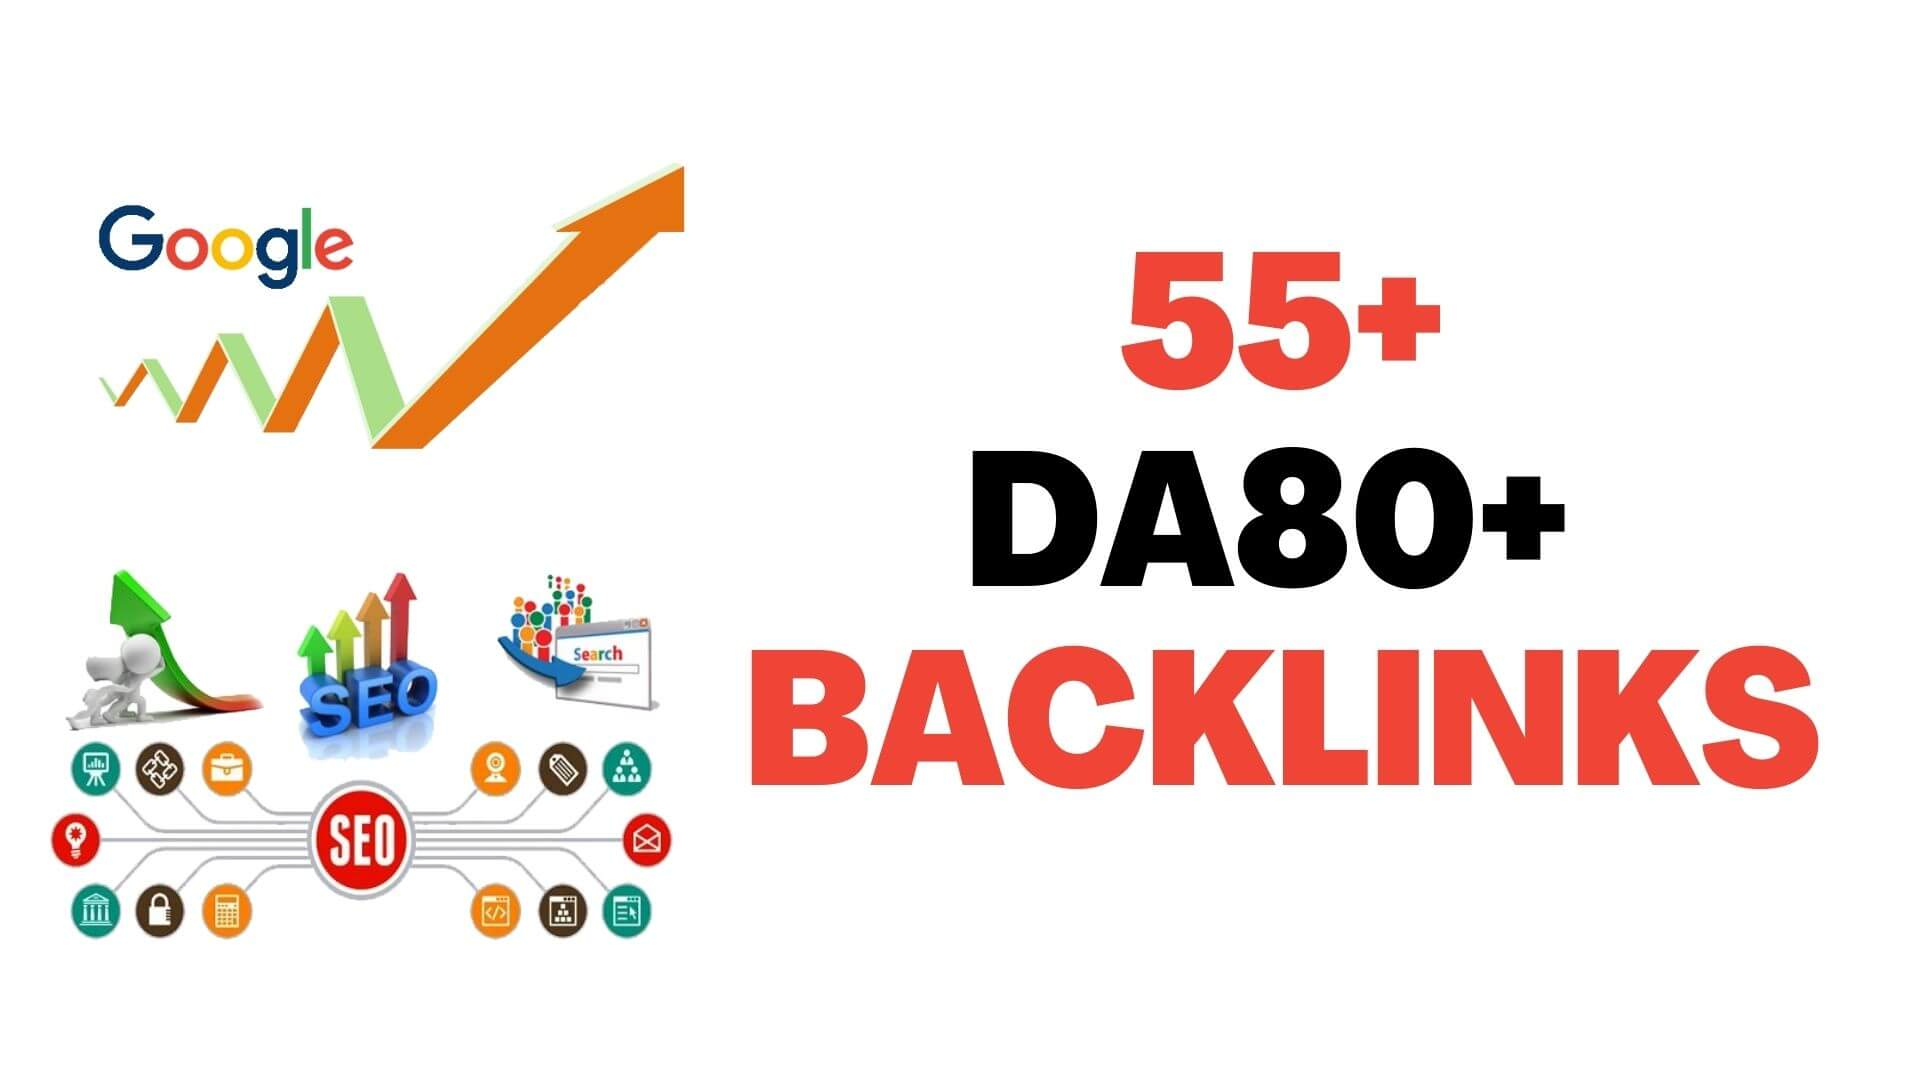 Verified 55+ DA80+ backlinks to Rank higher in Search result